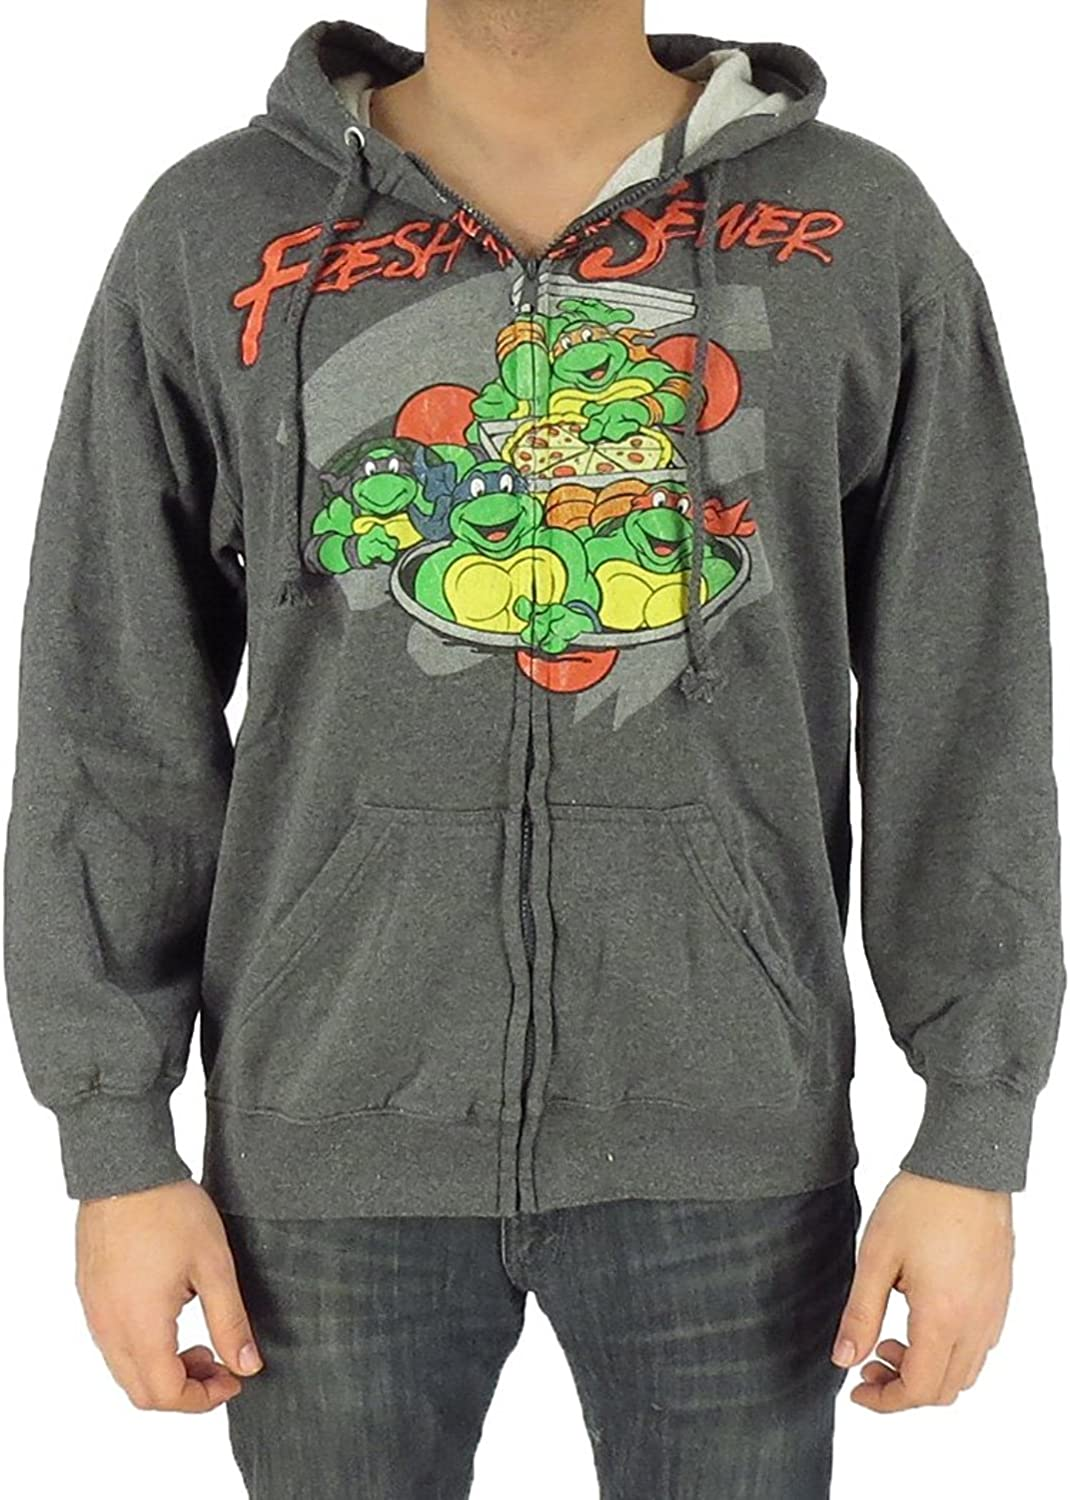 Teenage Mutant Ninja Turtles Fresh From The Sewer Full Zip Hoodie , Charcoal